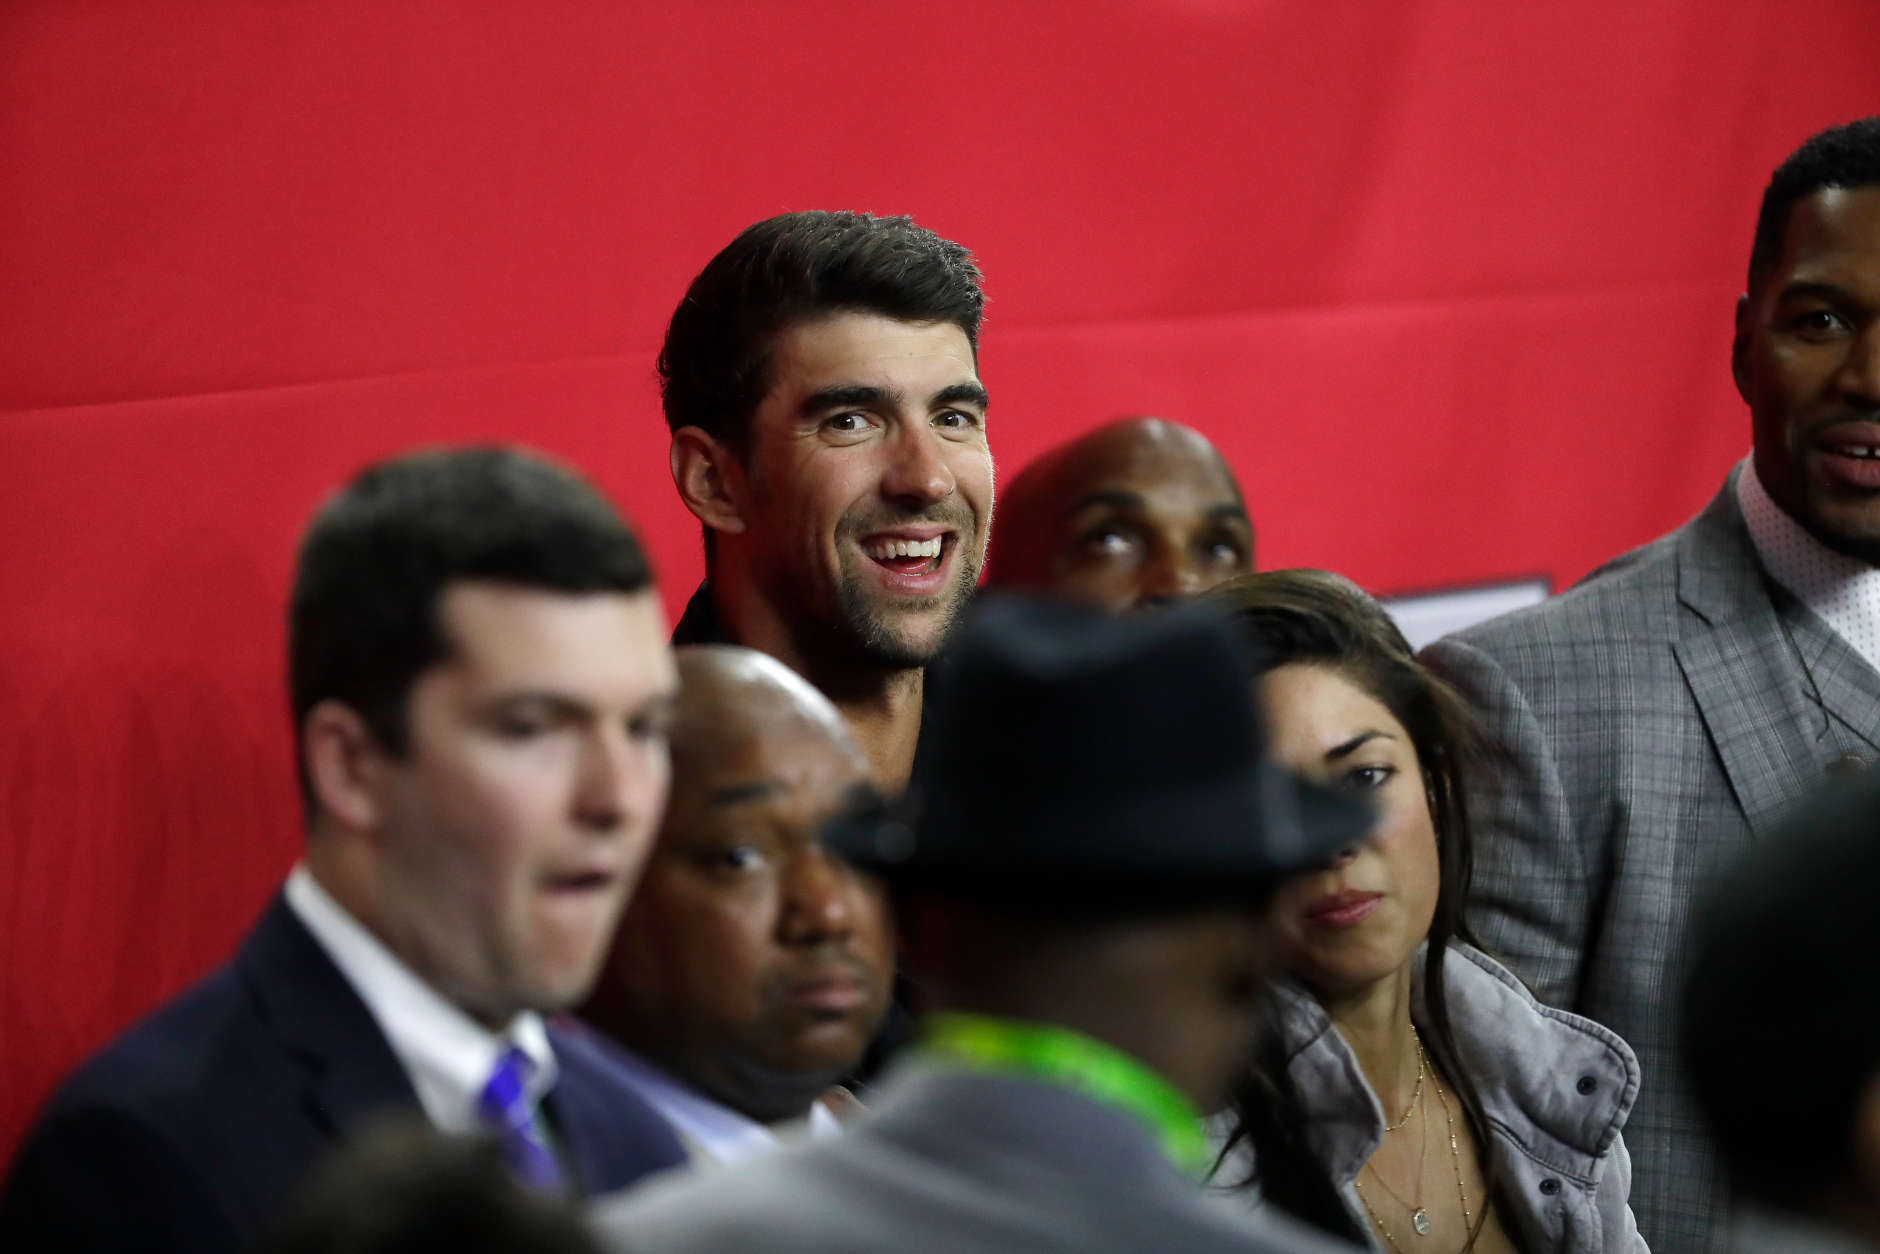 HOUSTON, TX - FEBRUARY 05:  Olympic Swimmer Michael Phelps is seen during Super Bowl 51 between the Atlanta Falcons and the New England Patriots at NRG Stadium on February 5, 2017 in Houston, Texas.  (Photo by Jamie Squire/Getty Images)